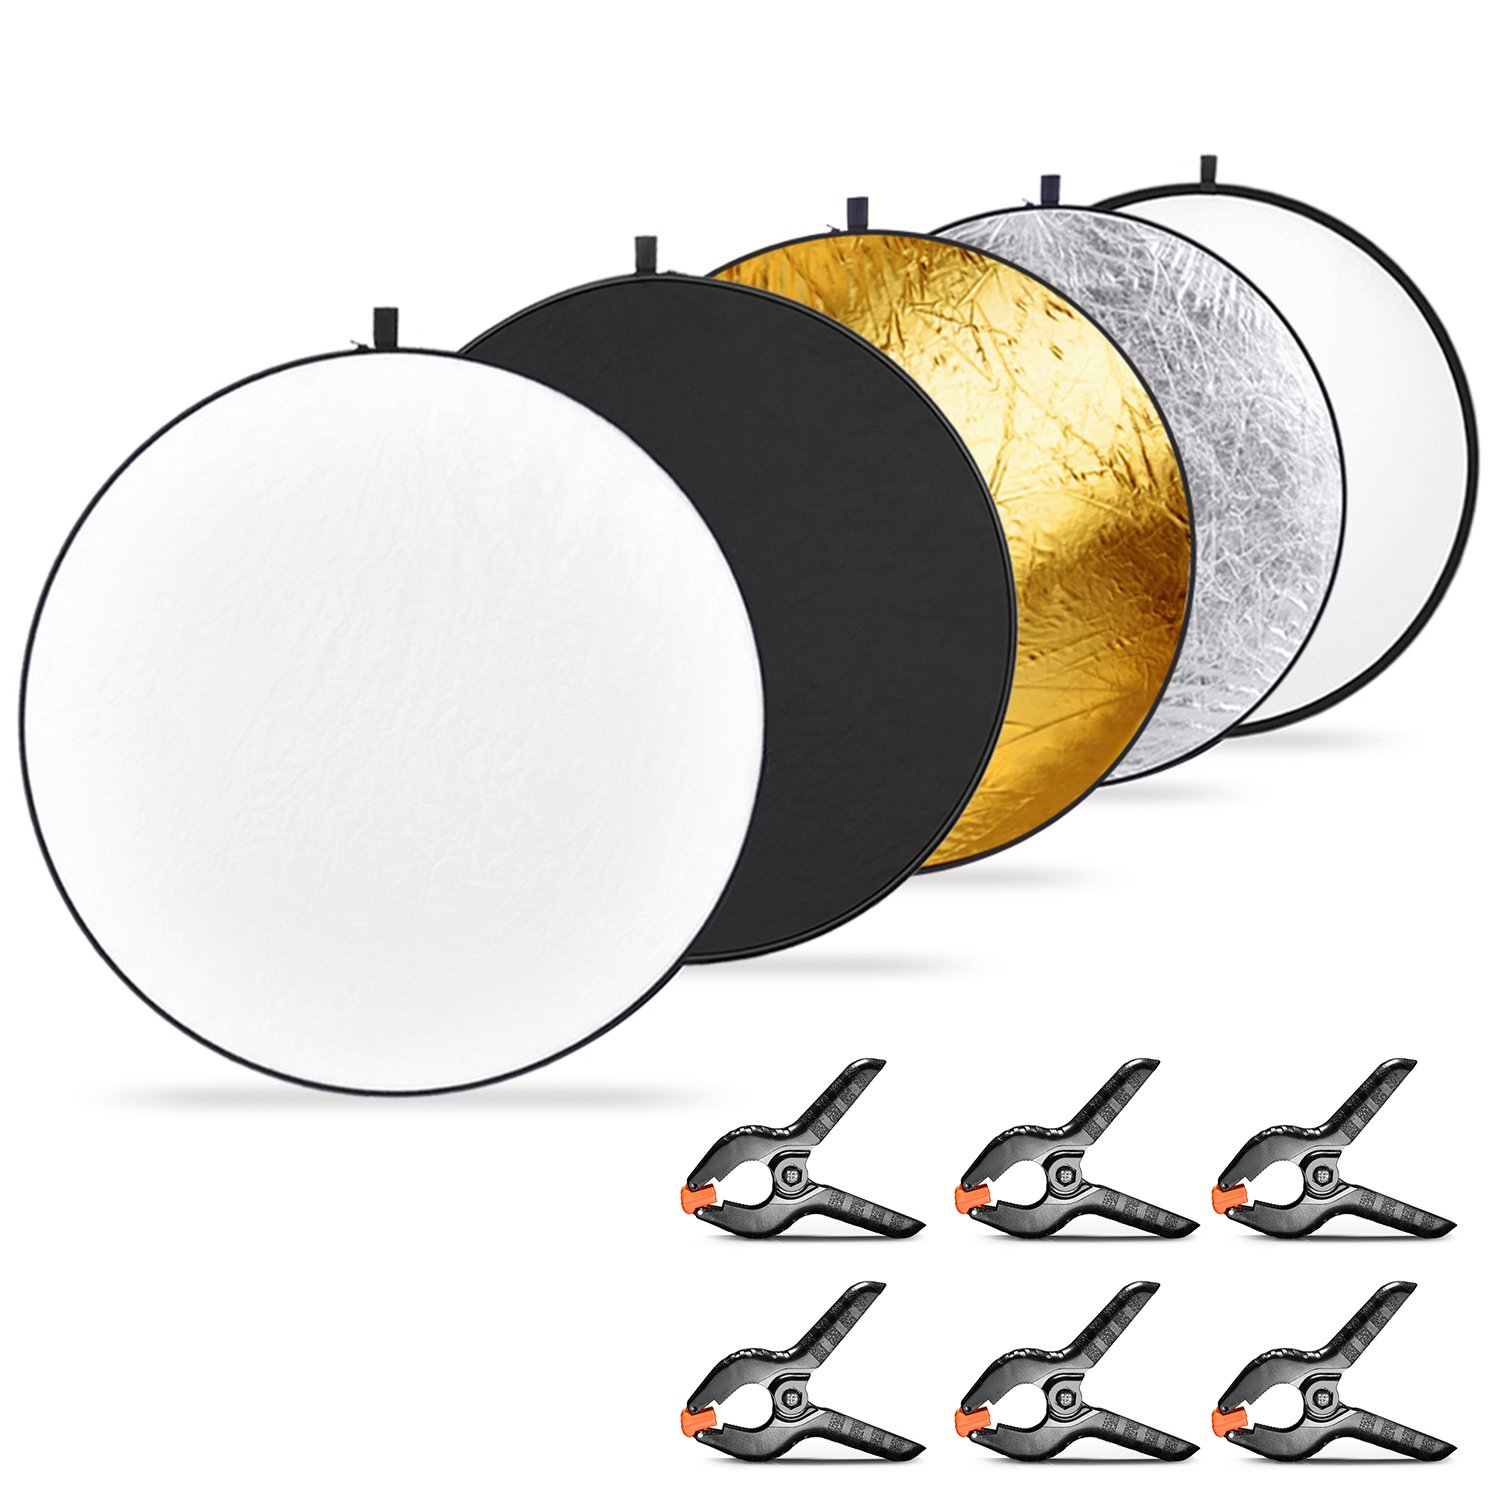 Neewer 5-in-1 Collapsible Multi-Disc Light Reflector...